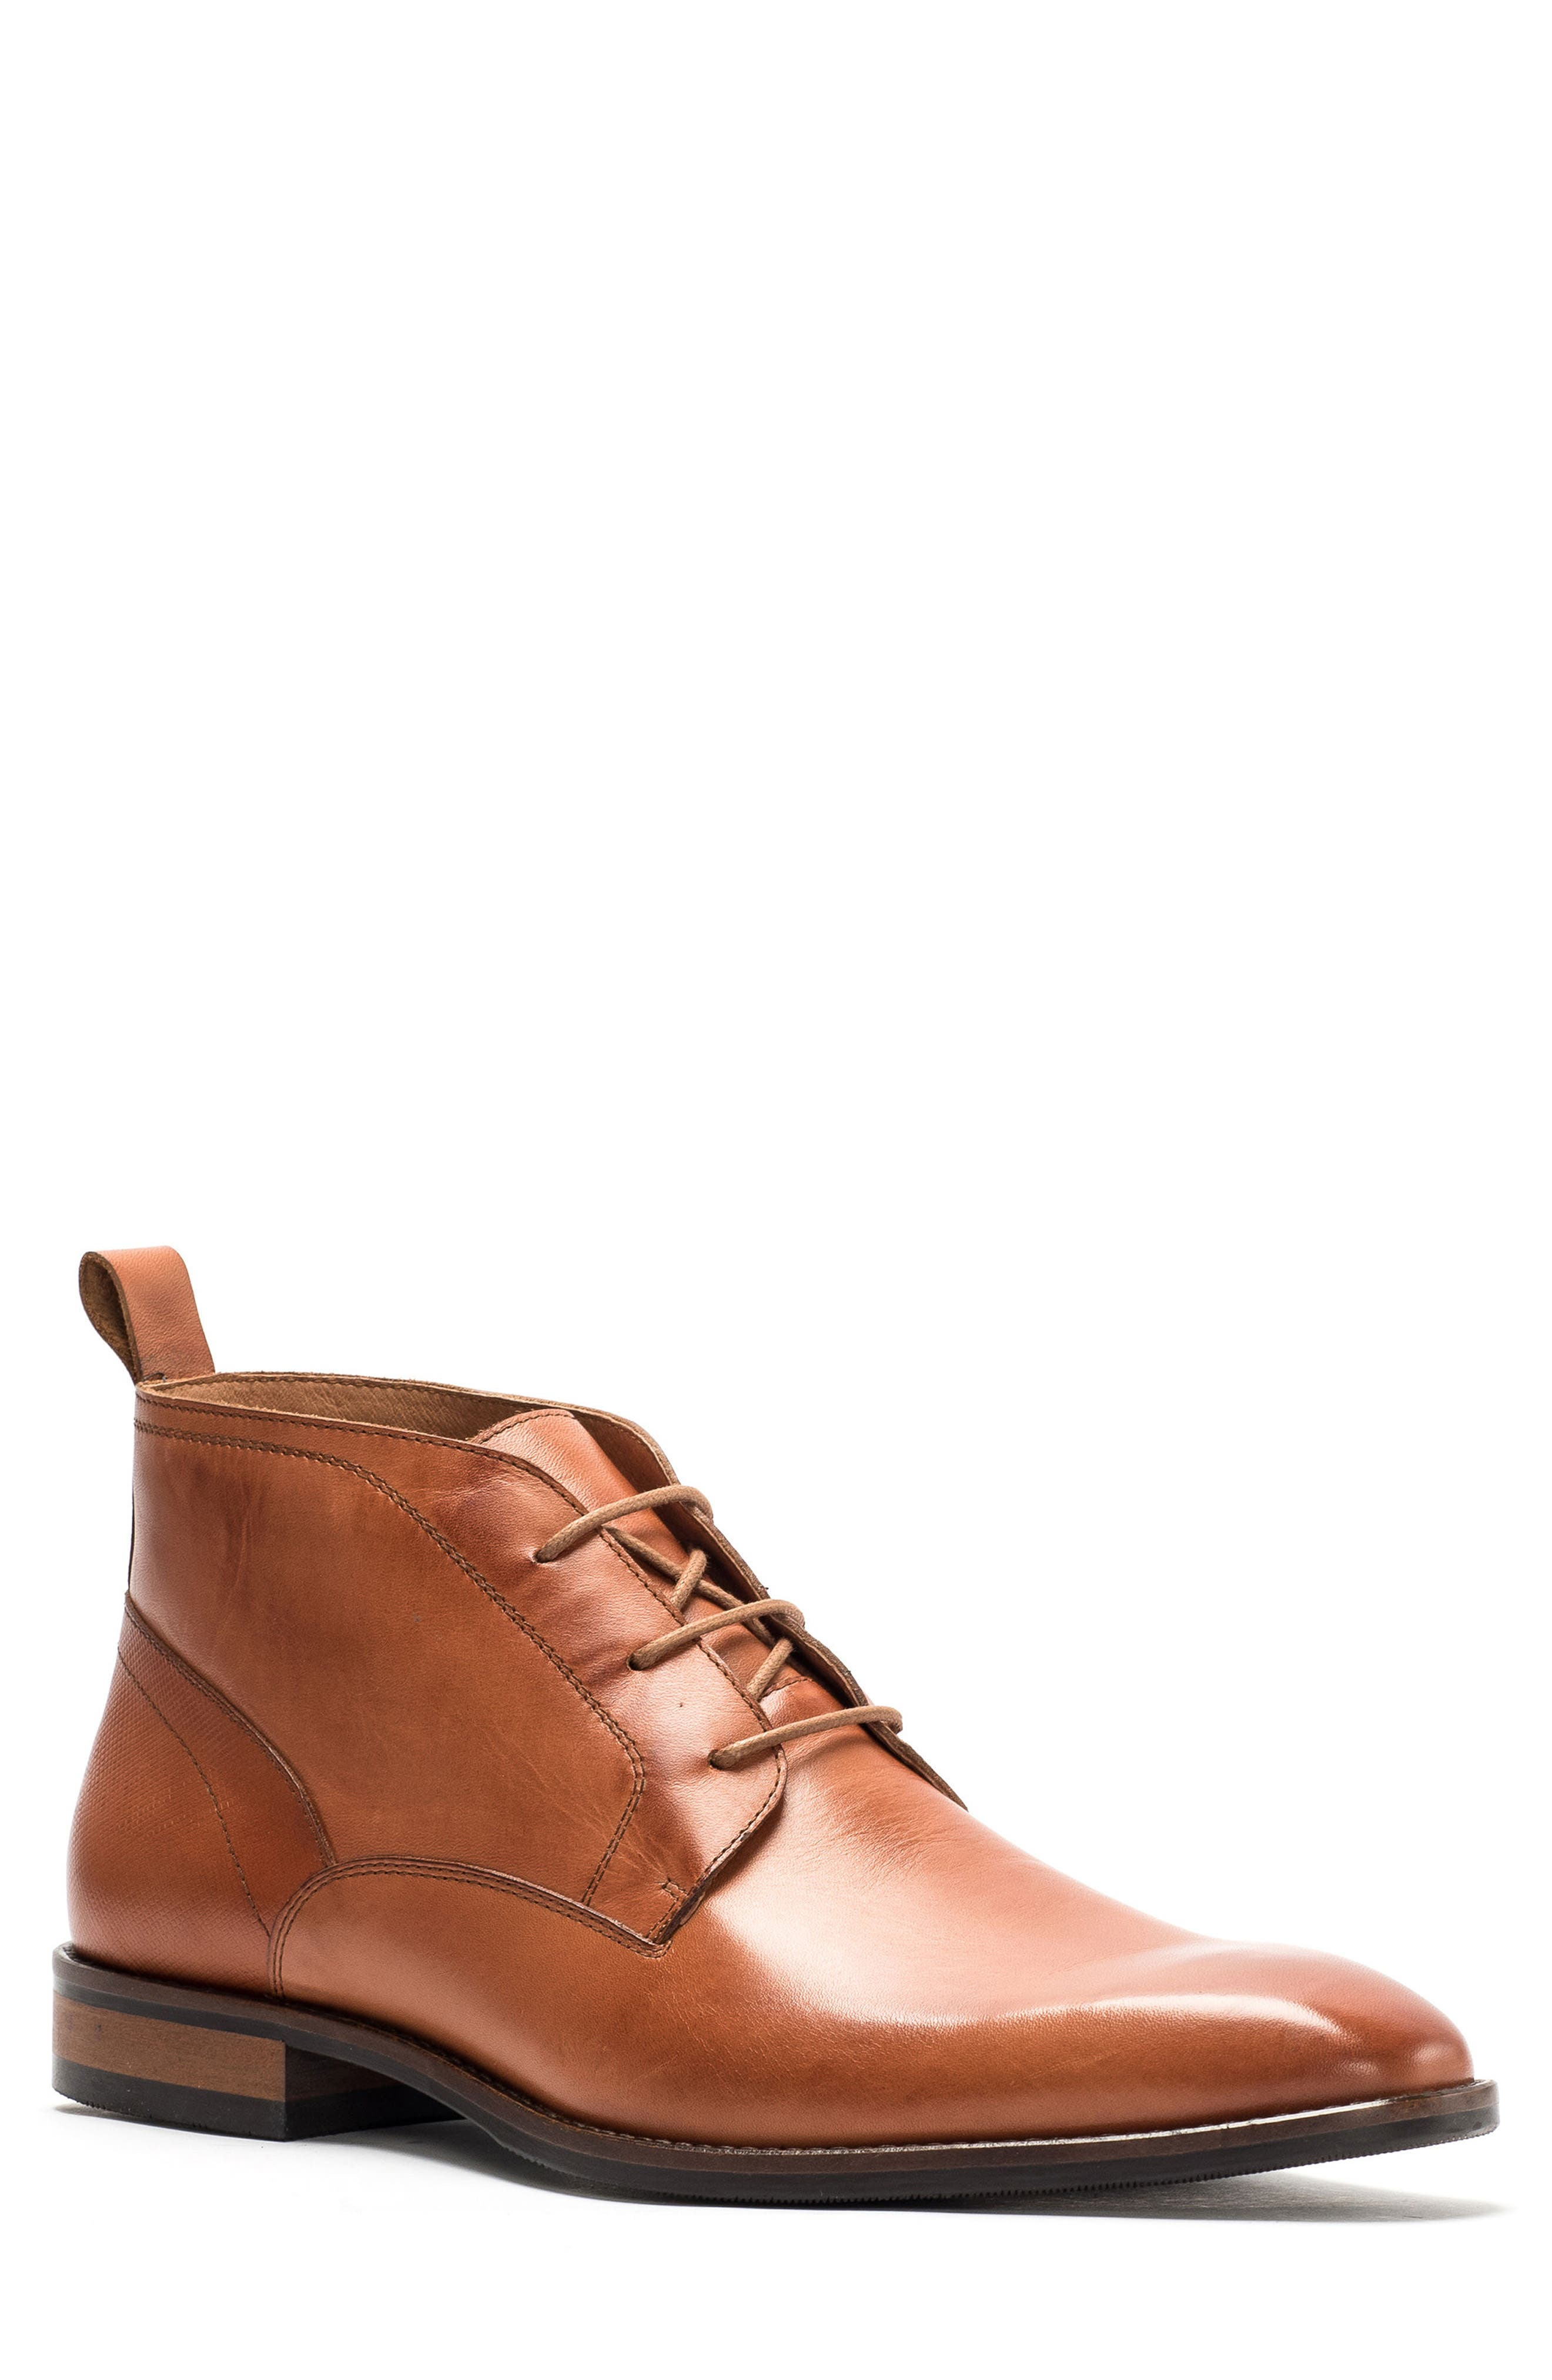 Wellington St. Chukka Boot,                             Main thumbnail 1, color,                             TAN